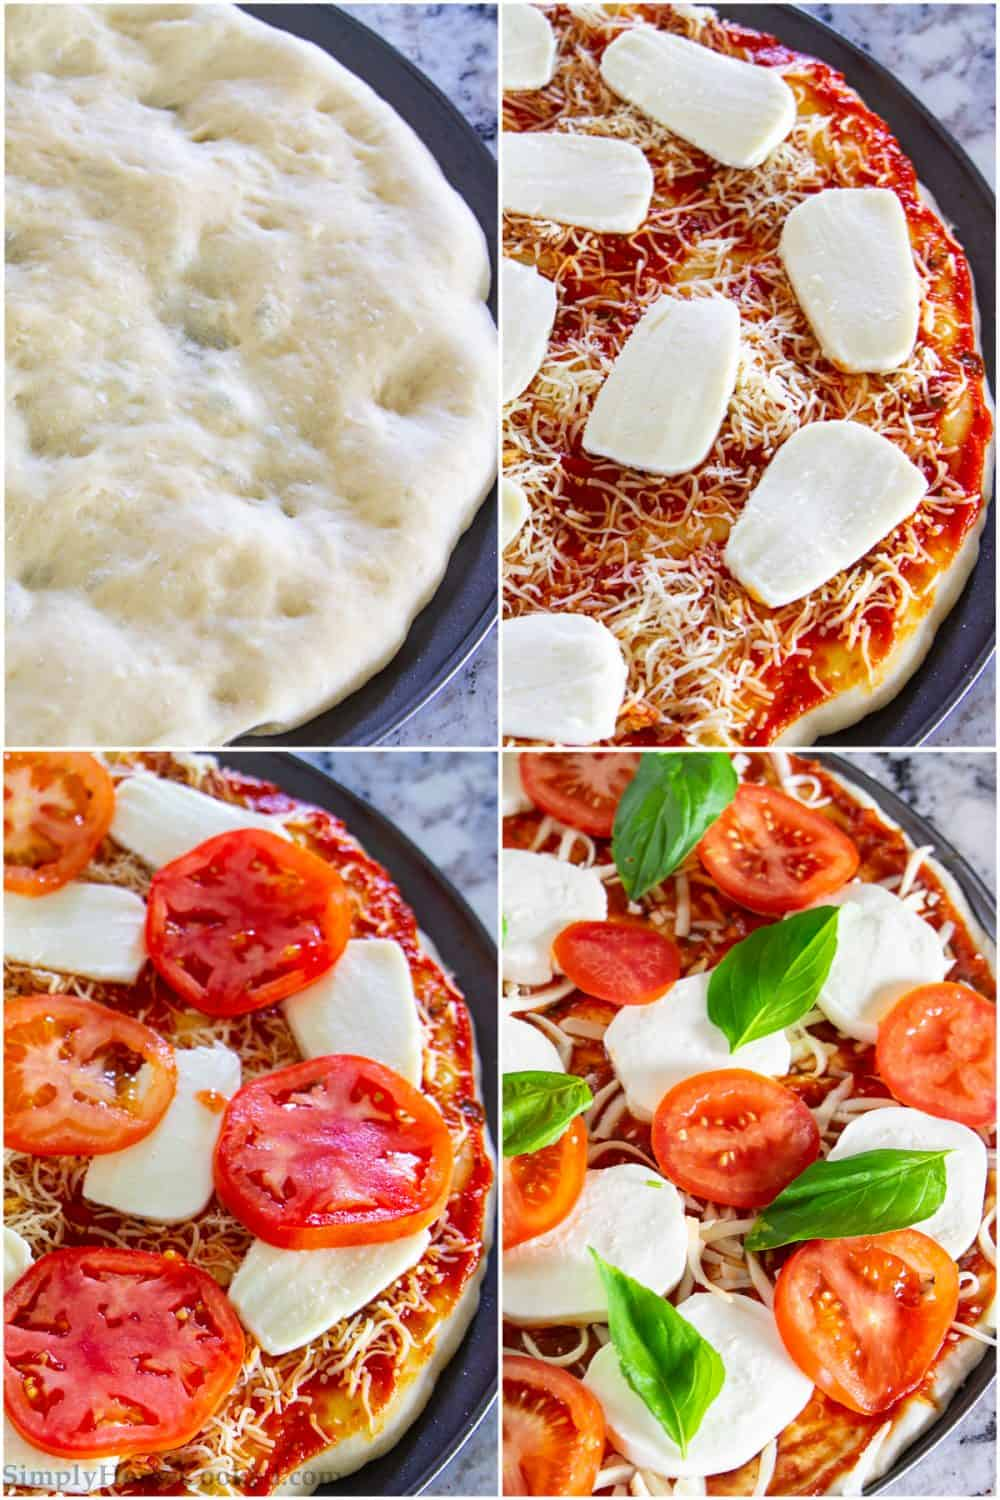 Step by step picture tutorial for making the margherita pizza recipe